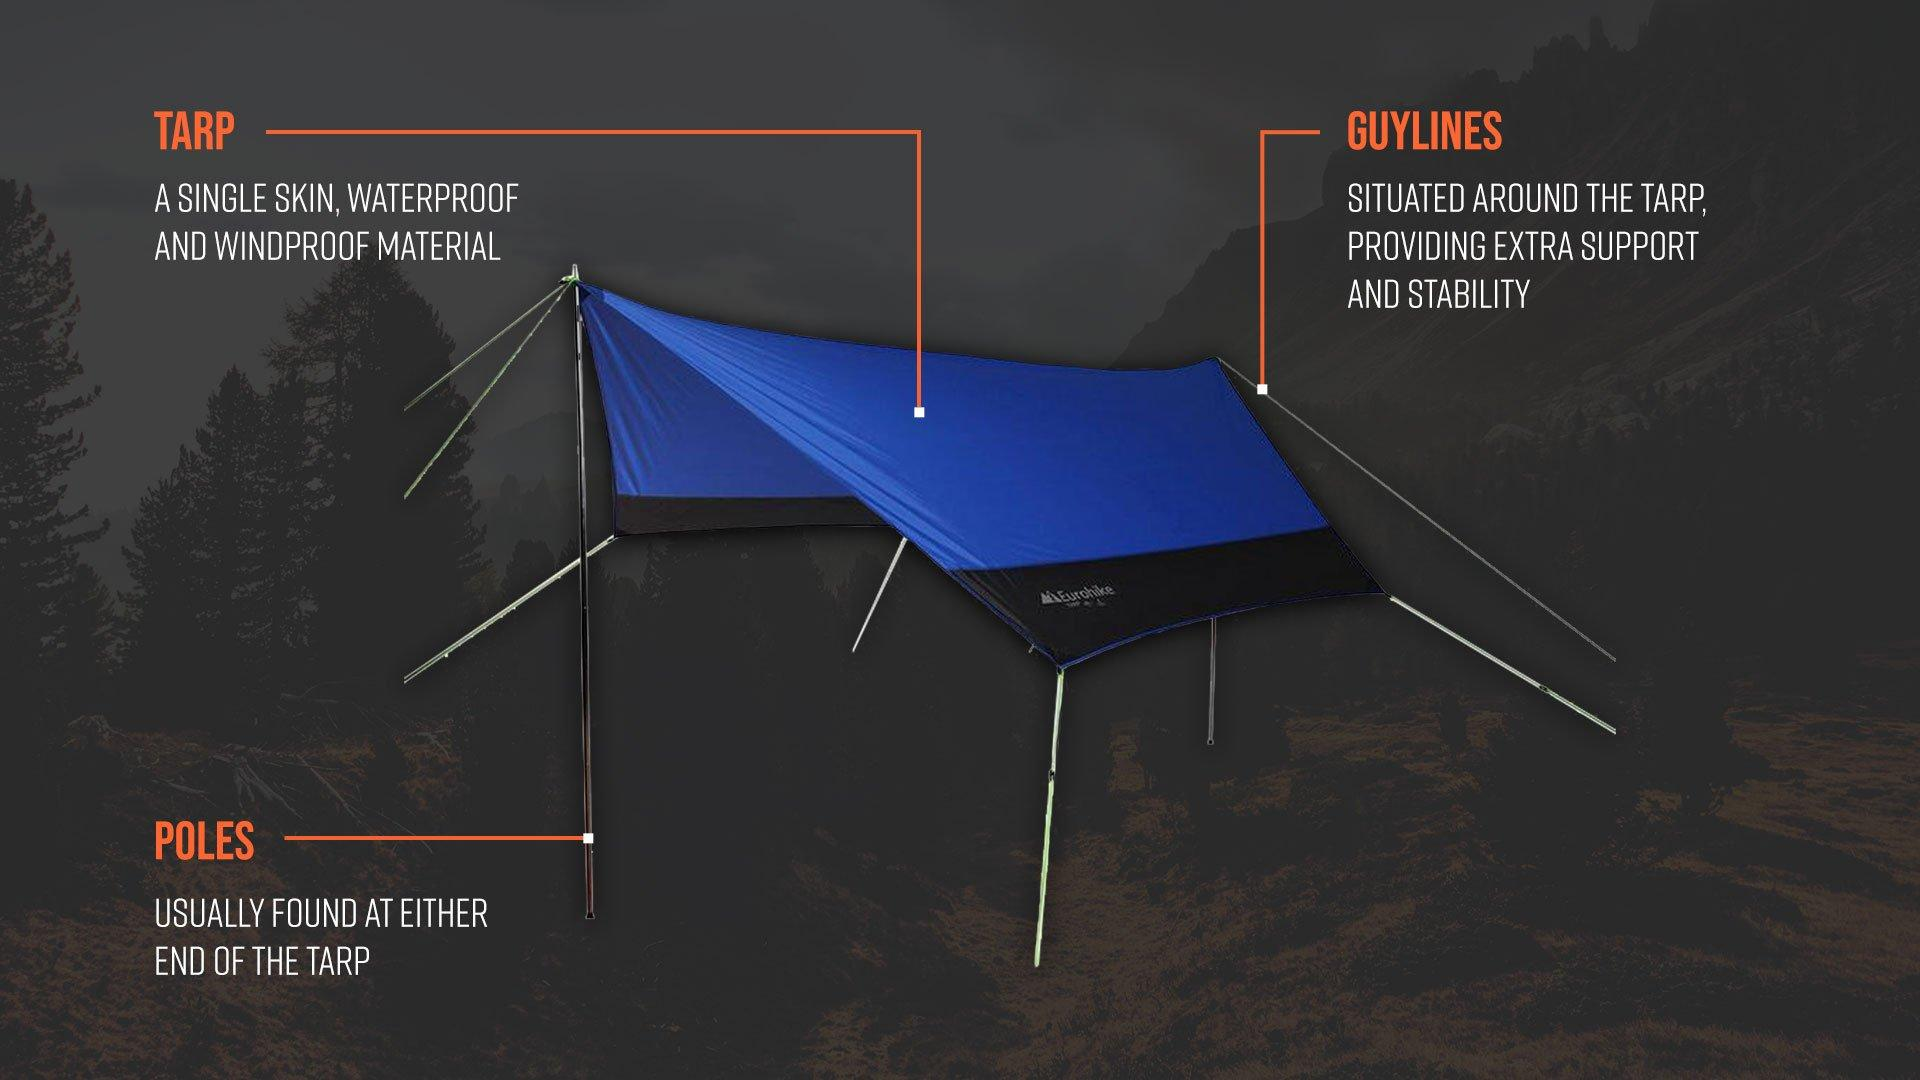 An image of a Eurohike tarp with labels describing the different areas of the tarp